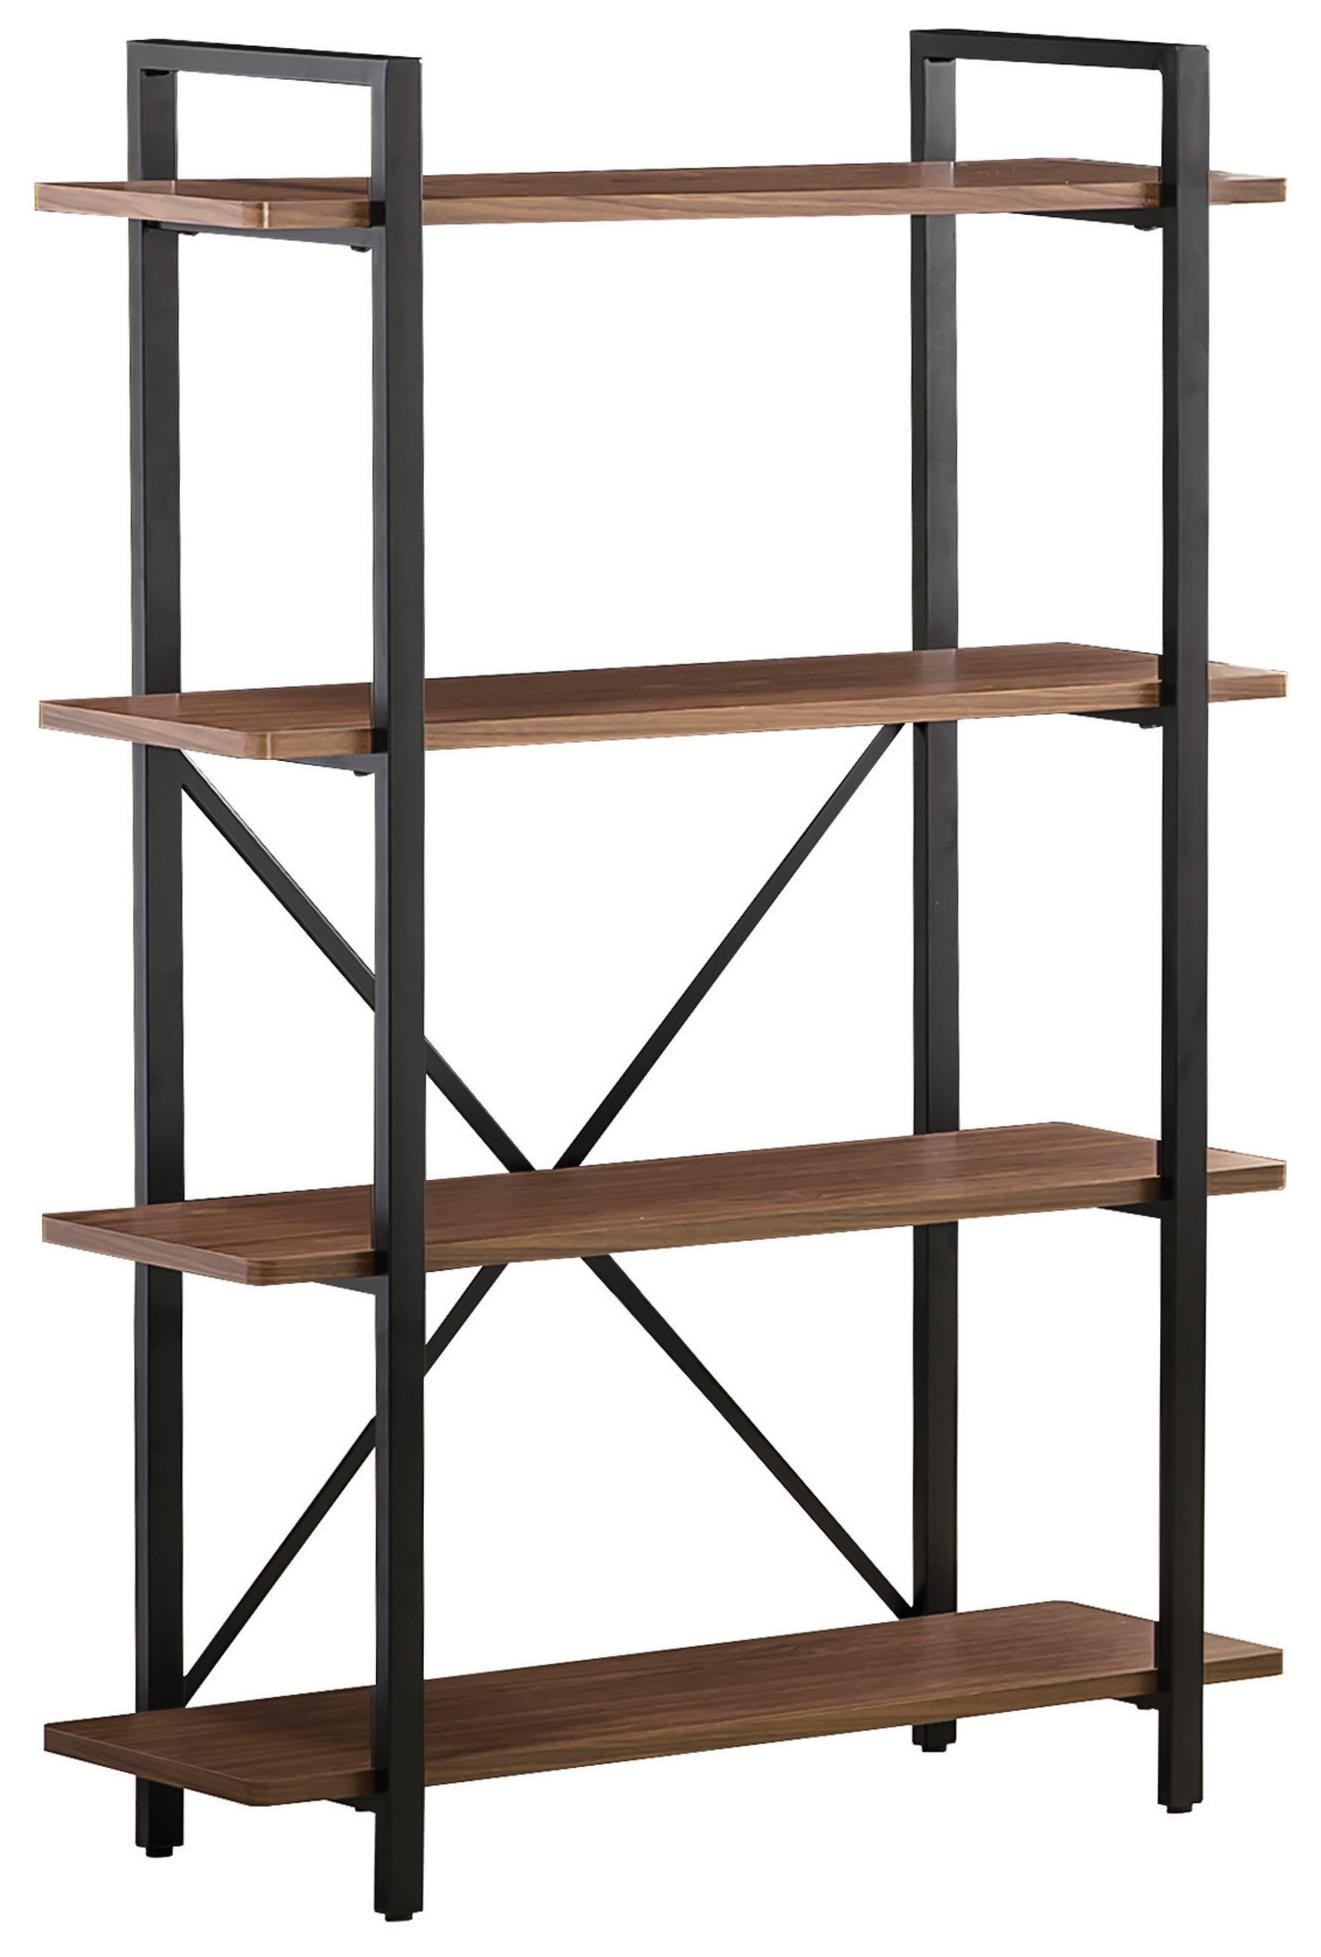 Coaster Bookcases Industrial Style Bookcase With 4 Shelves | Value City  Furniture | Open Bookcases